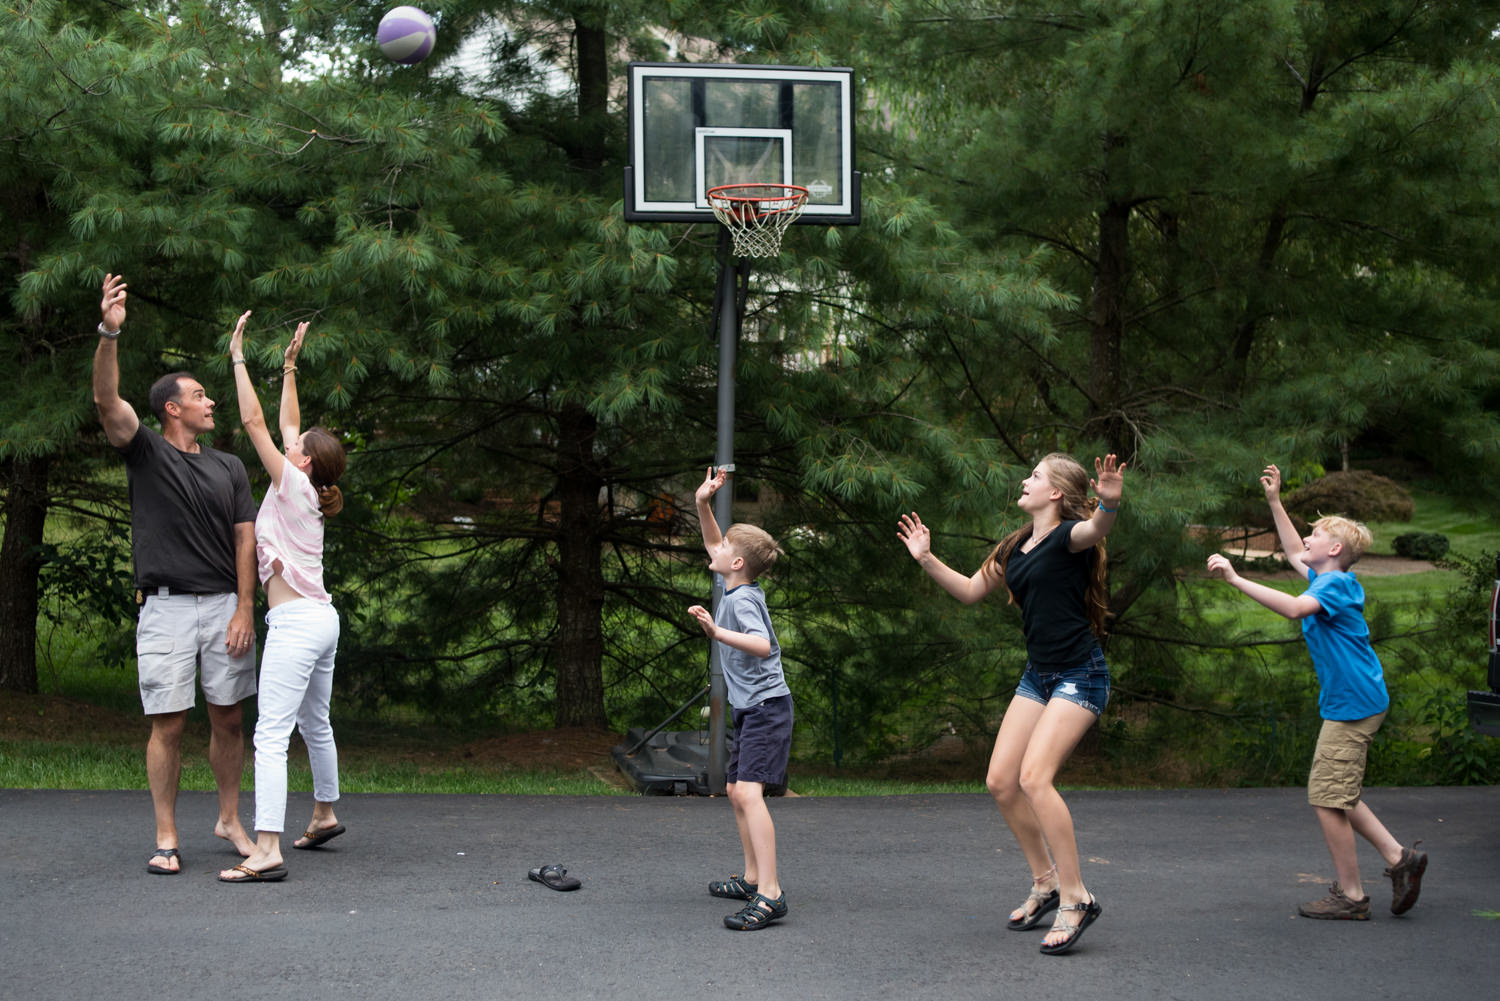 dad throws a basketball while mom blocks him